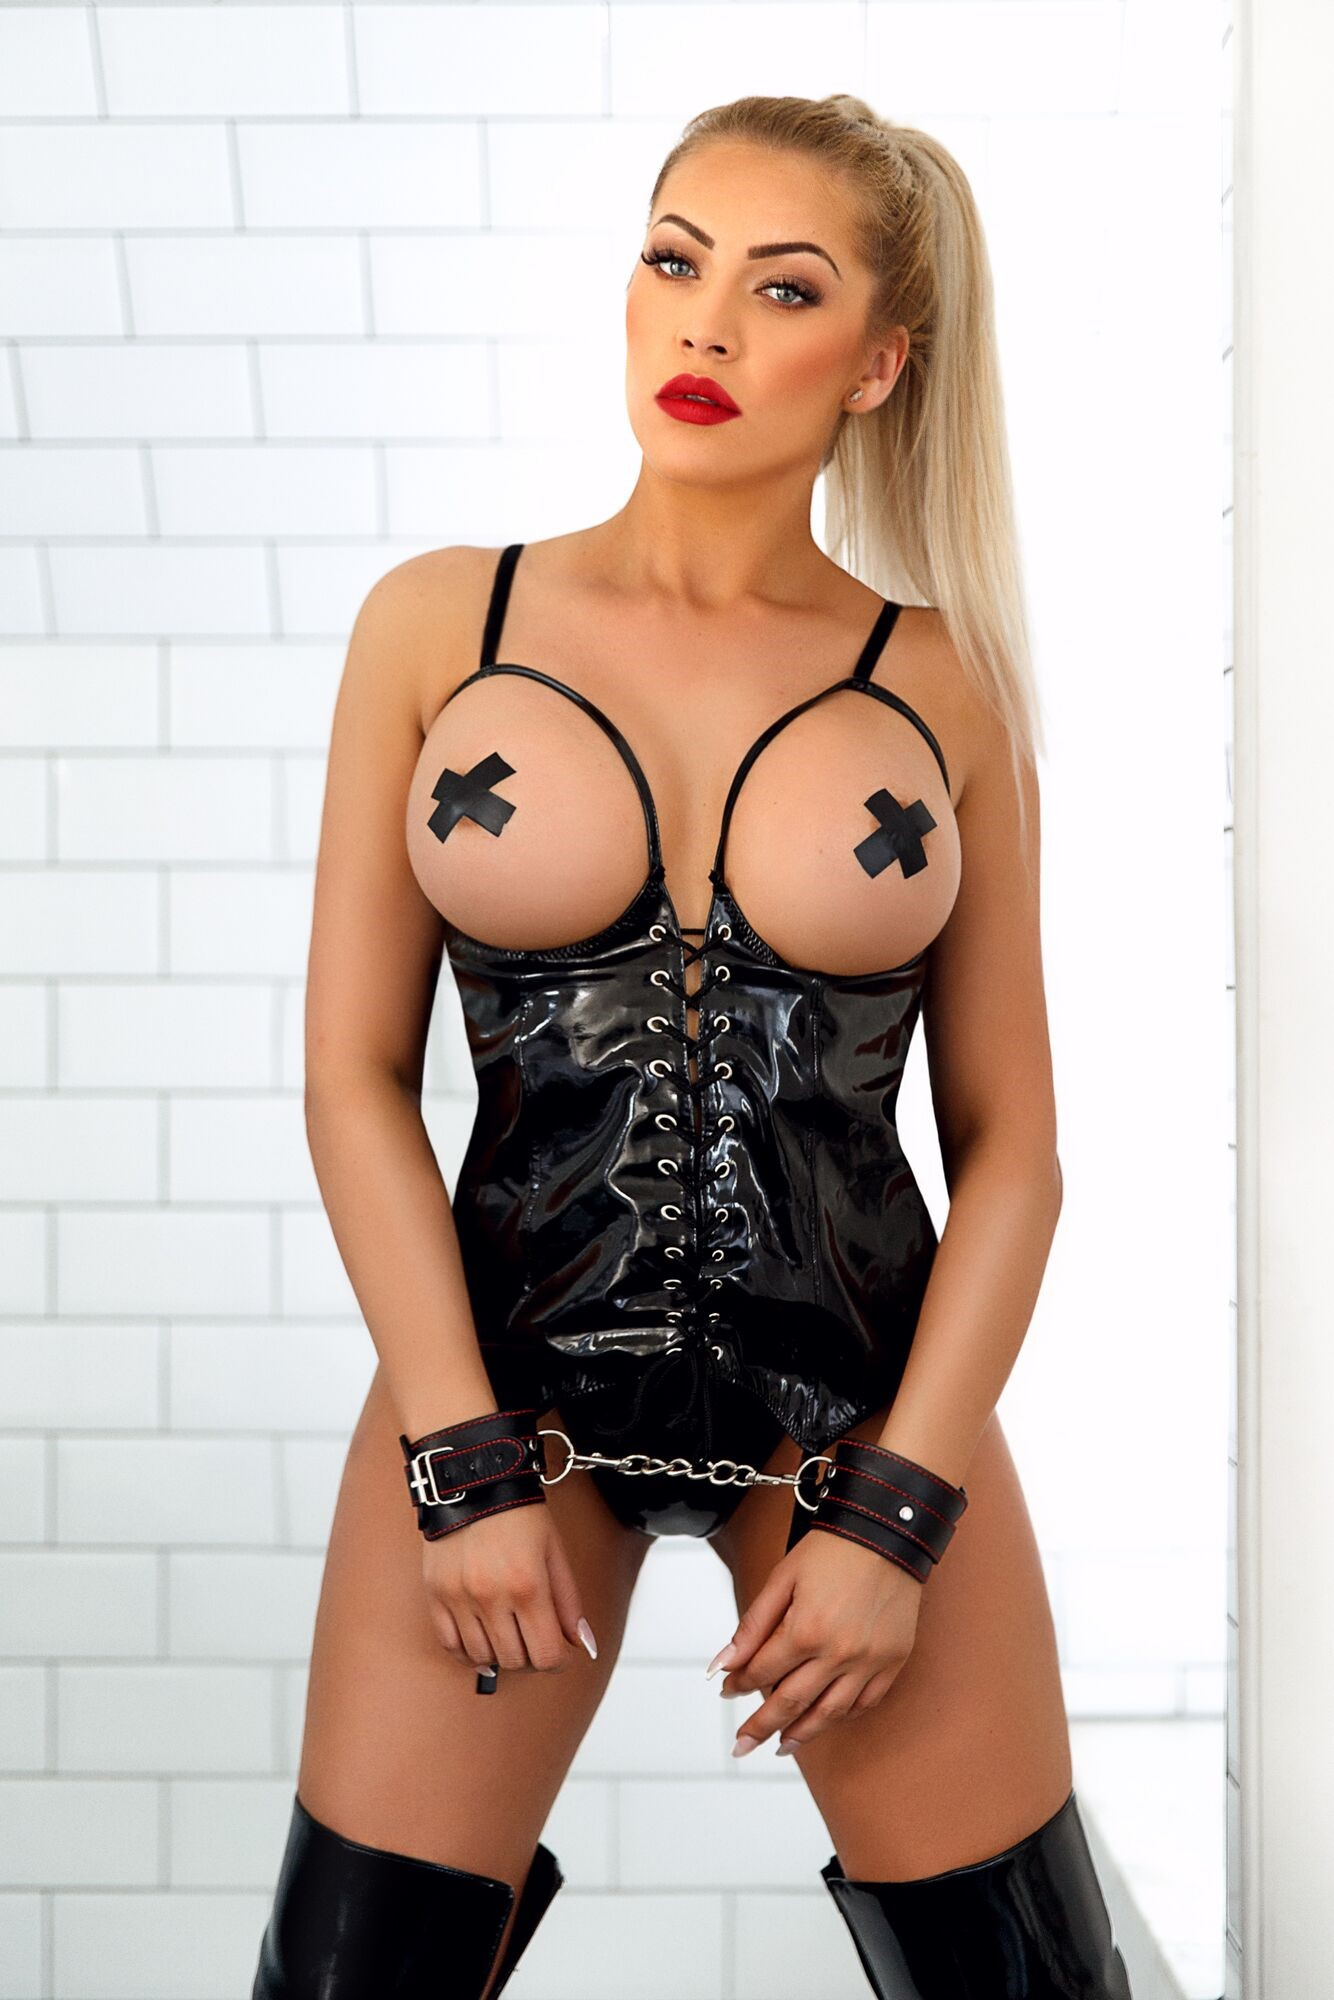 Denny 36D Stunning Marble Arch Escort in London